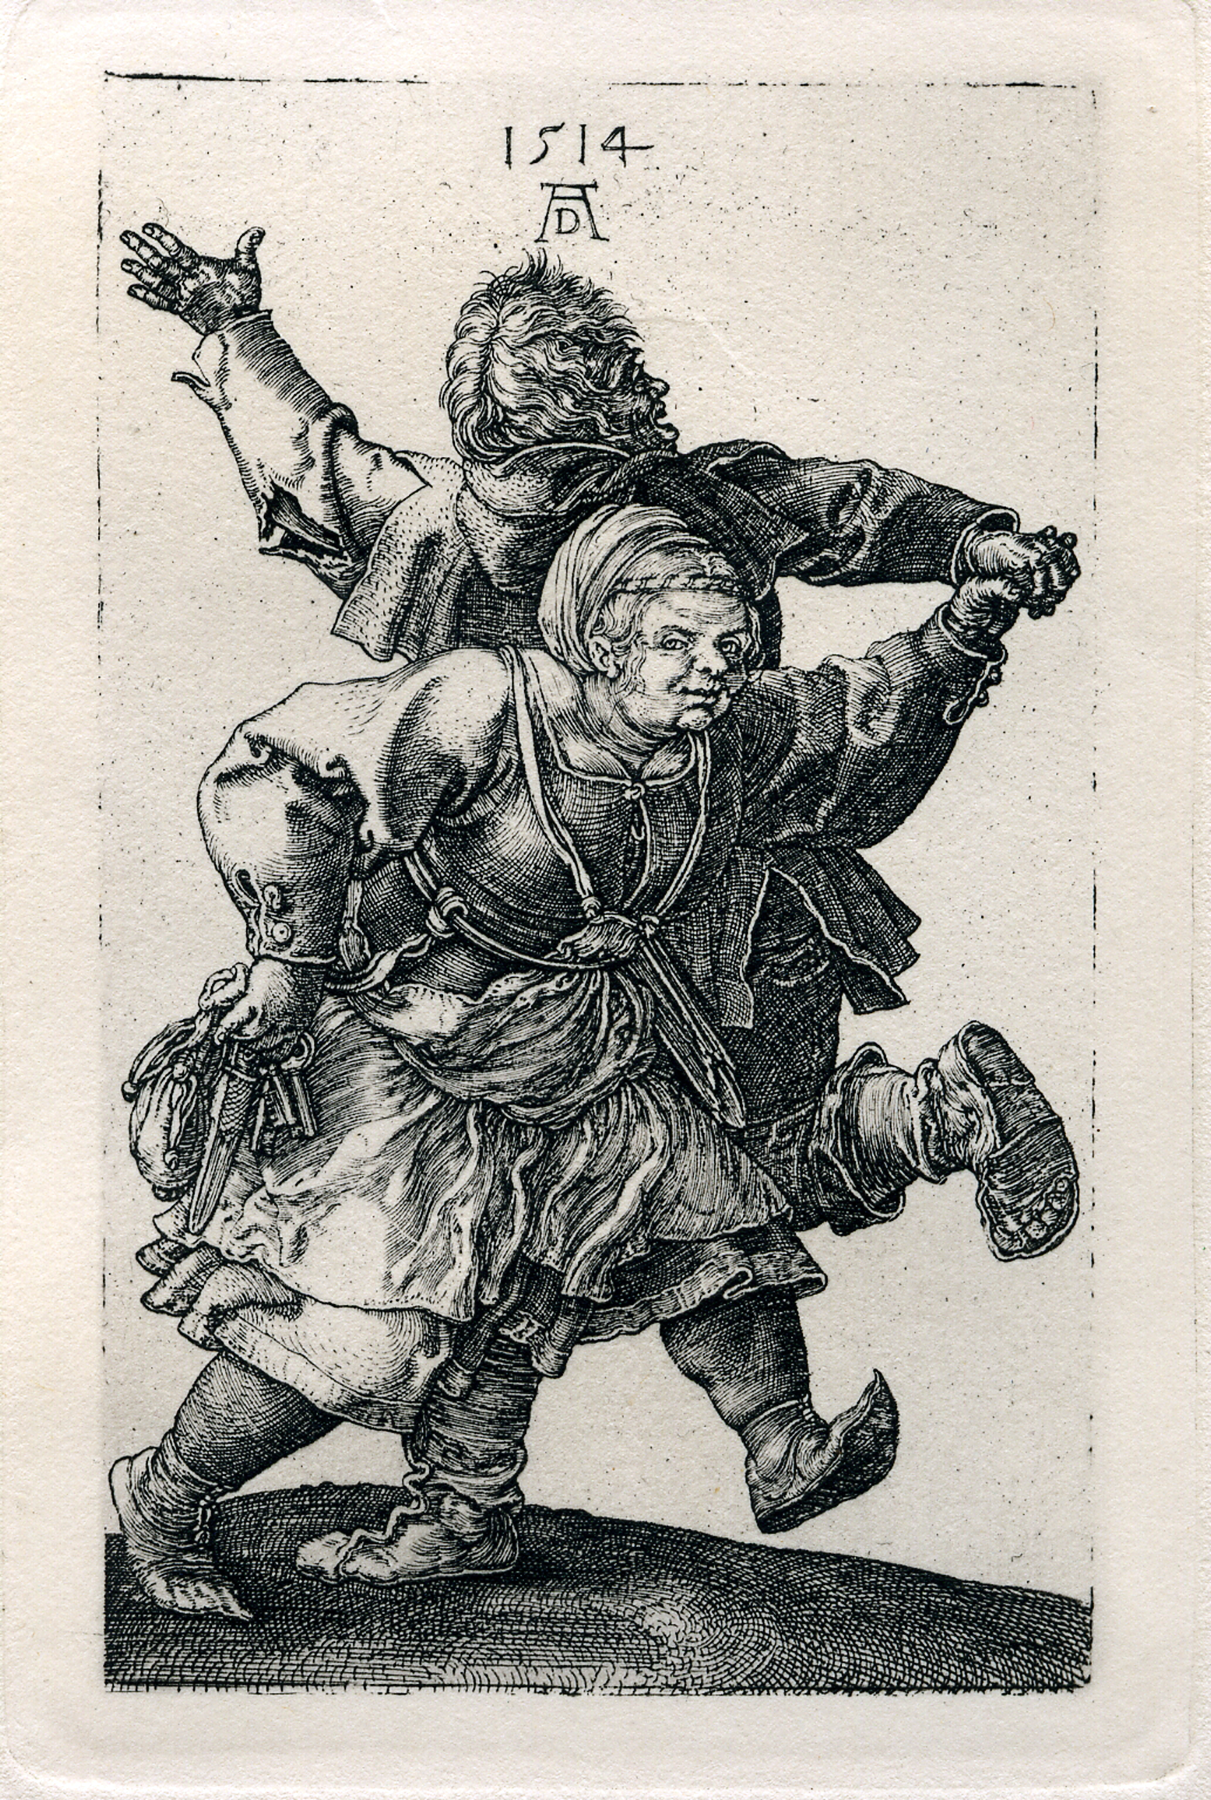 003 Peasant Couple Dancing by Albrecht Durer Poster Zazzle